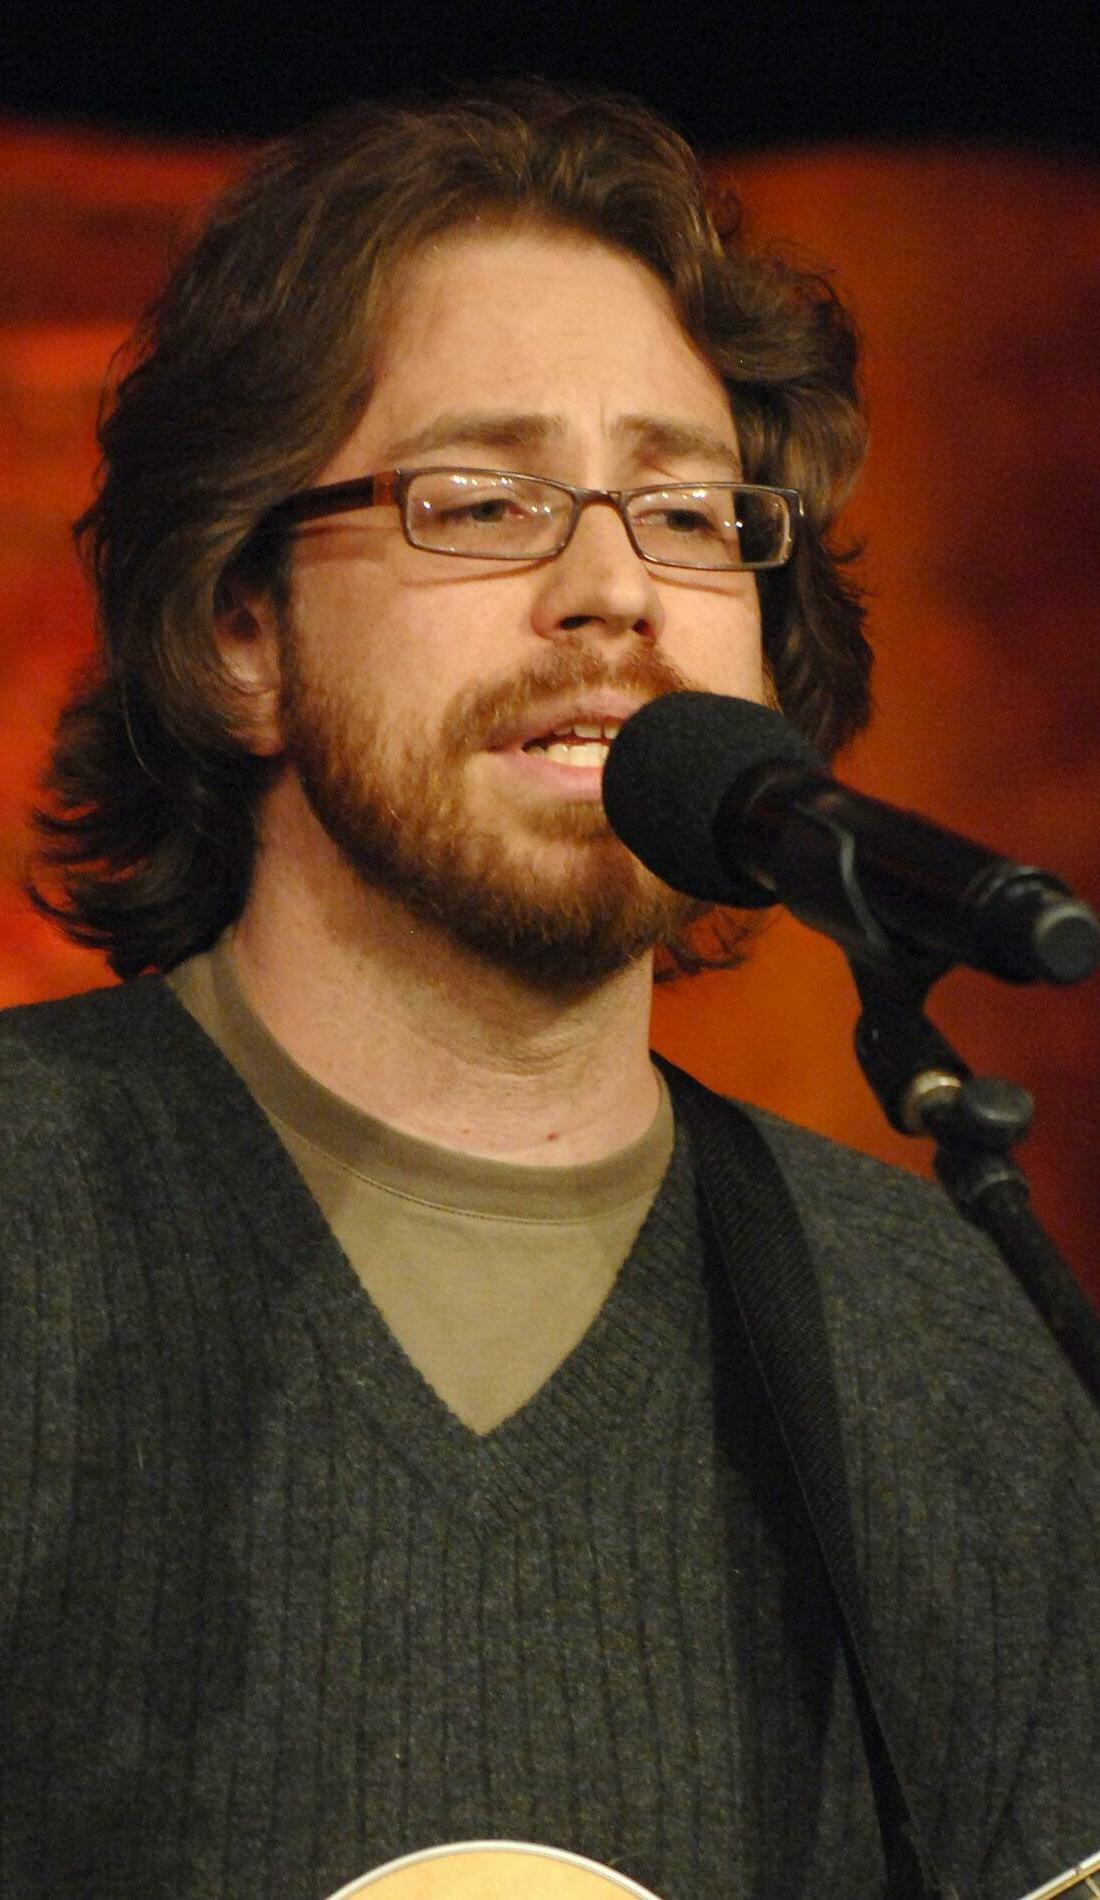 A Jonathan Coulton live event